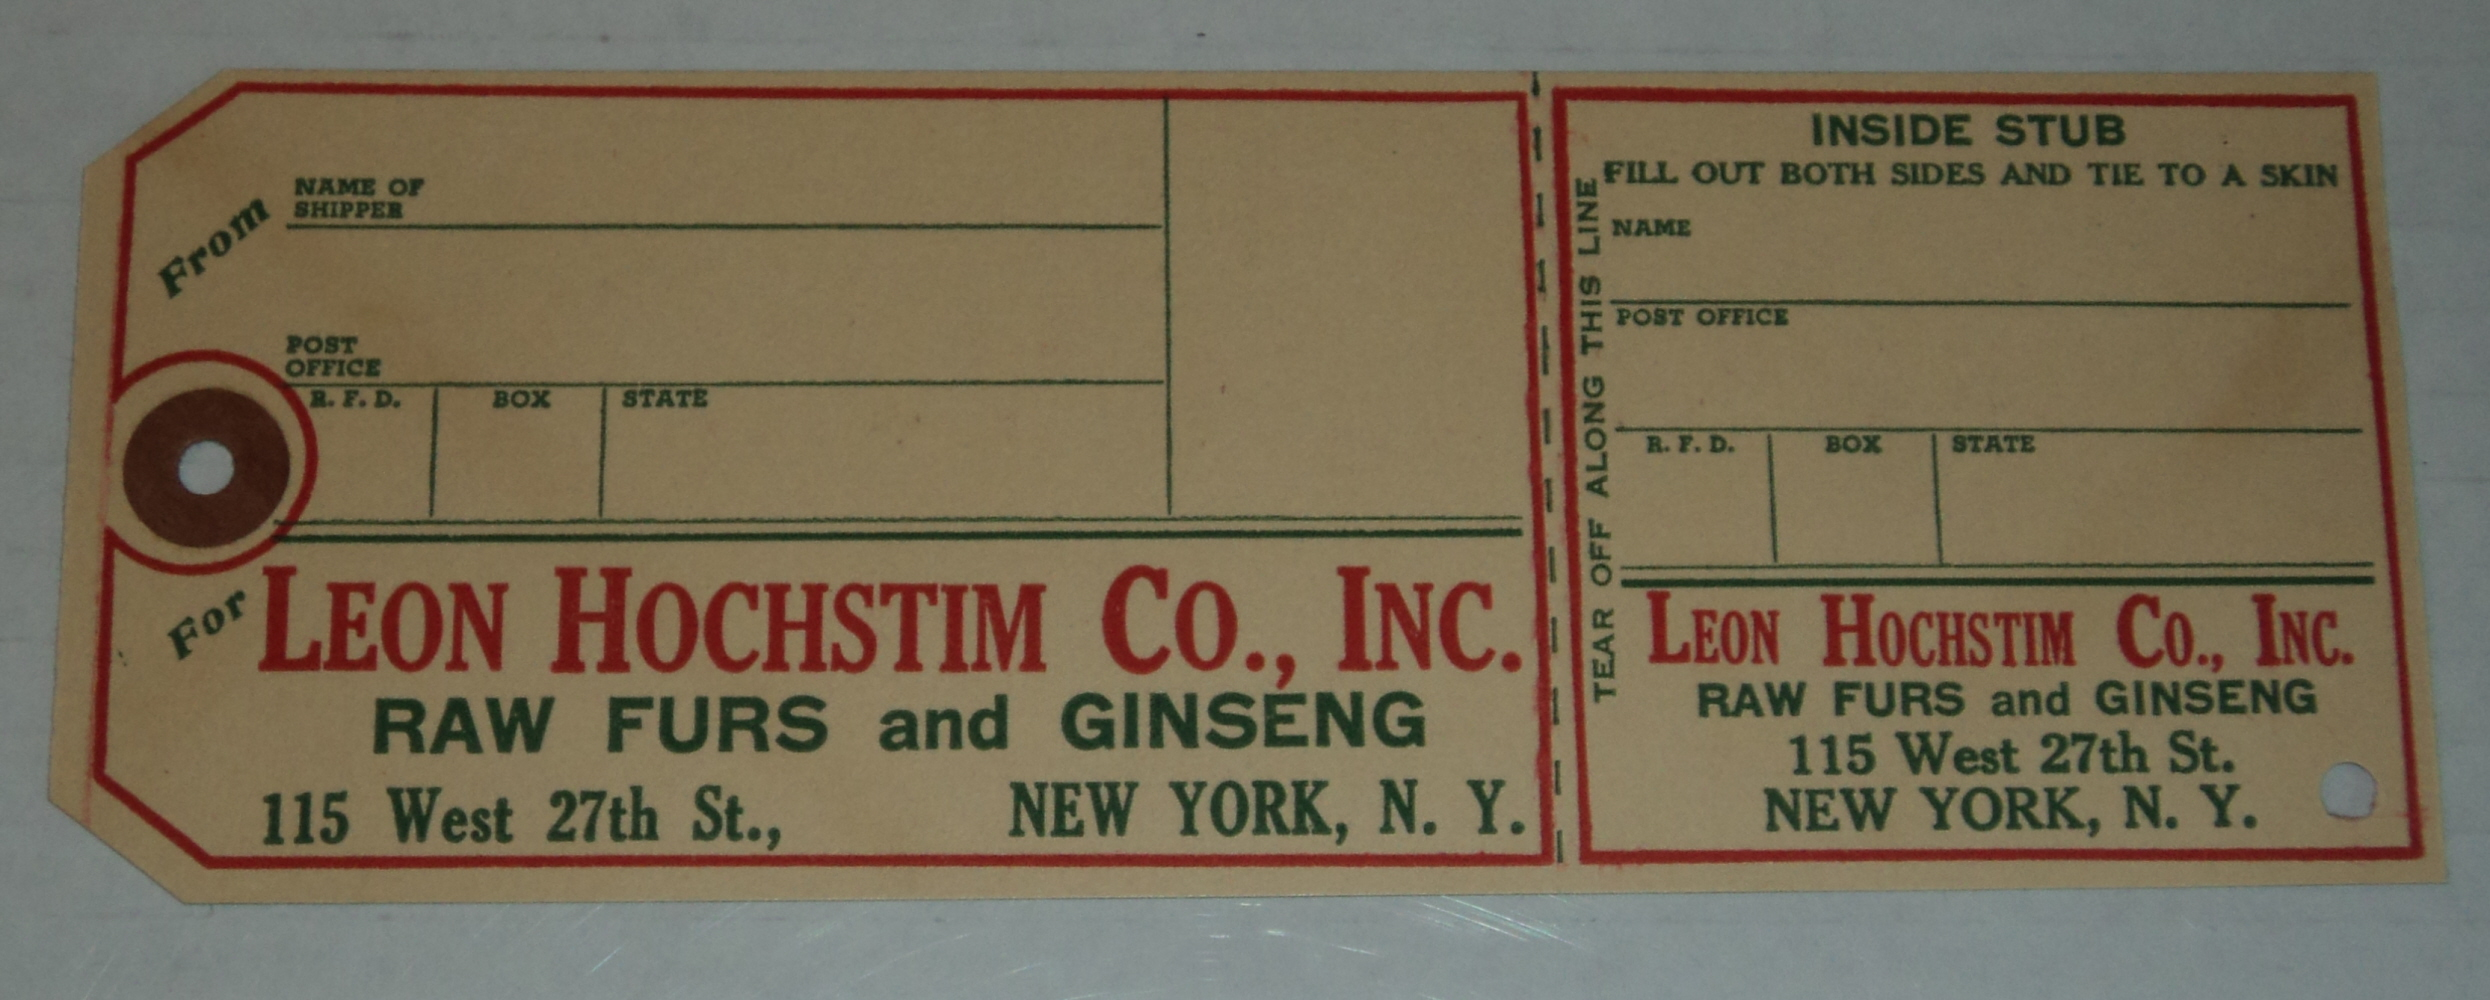 Image for LEON HOCHSTIM CO. INC. RAW FURS AND GINSENG printed form letter and price list distributed to TRAPPERS & SUPPLIERS OF FURS.